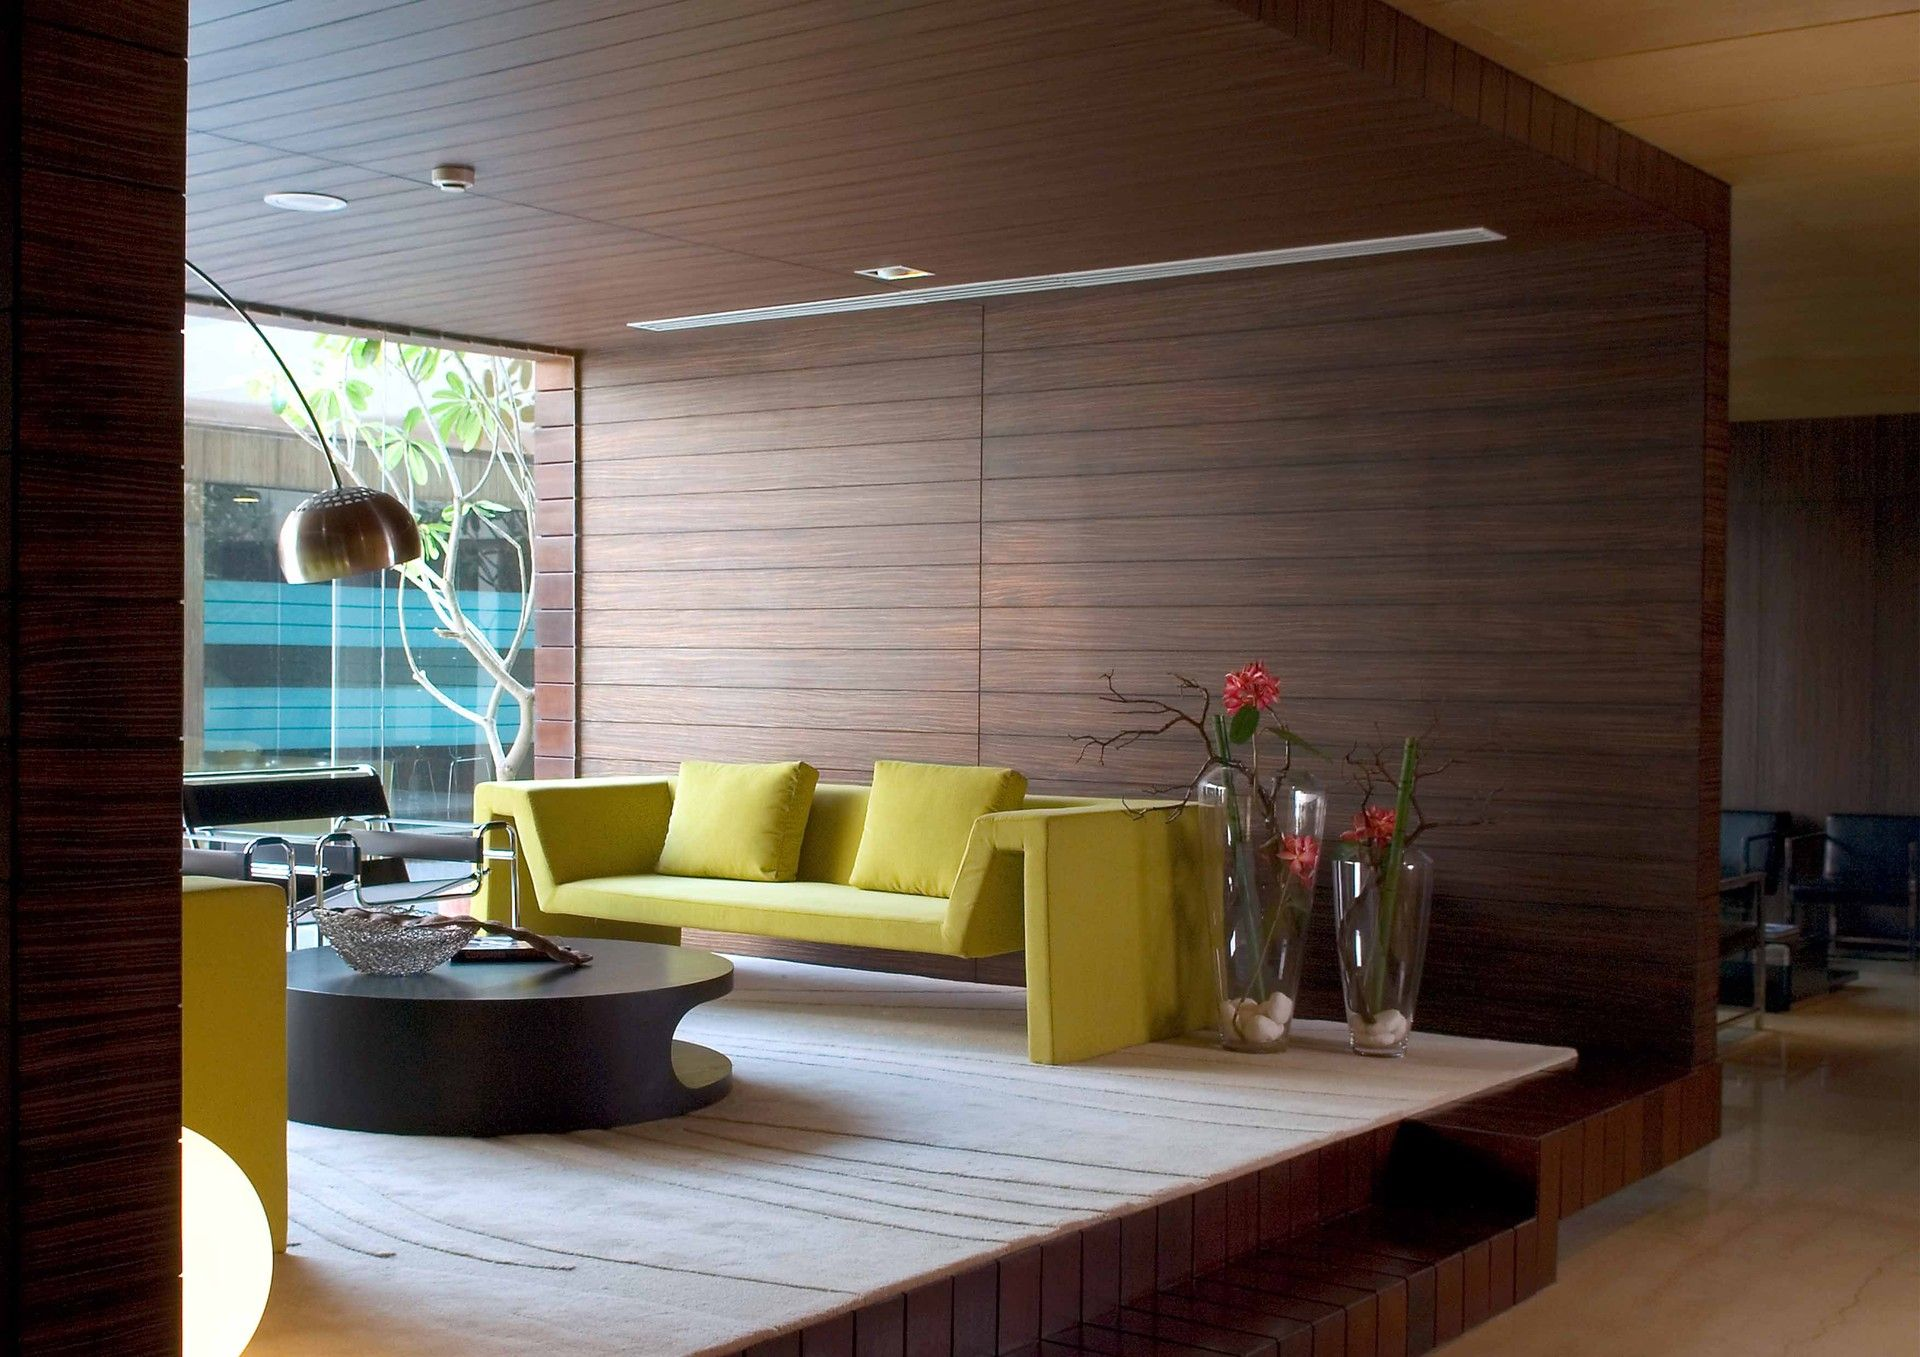 Jindal Pipes Corporate Office Interior architecture